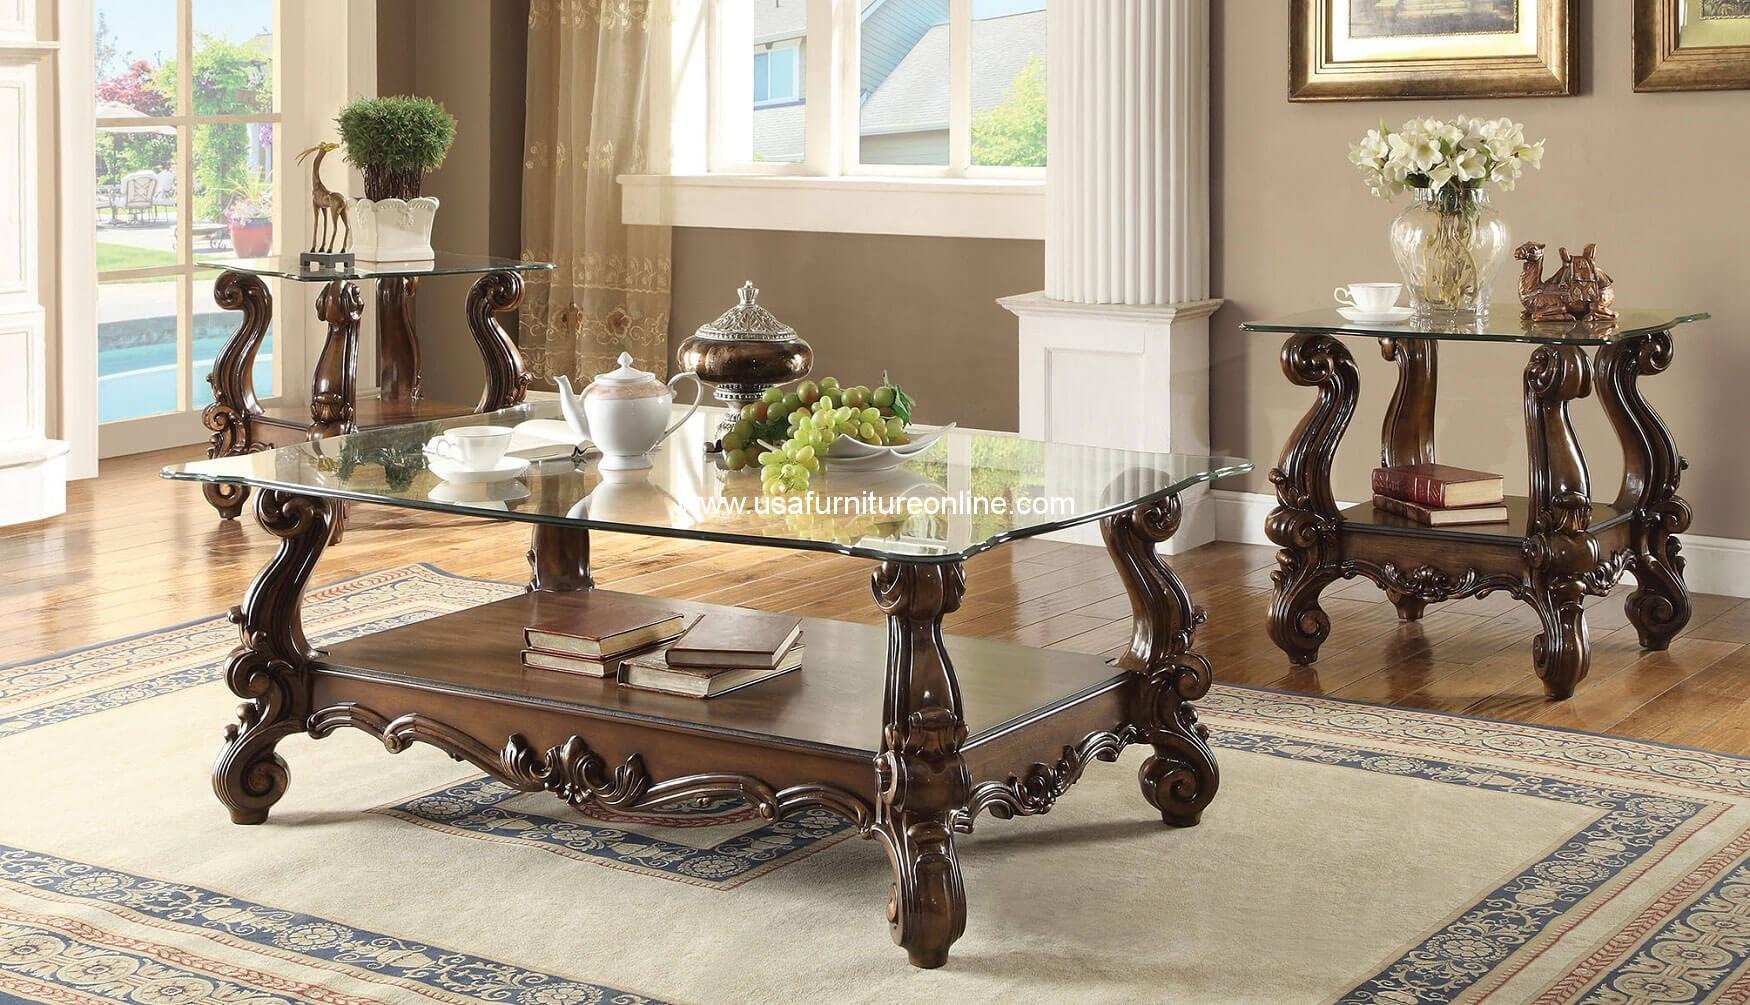 3 Piece Glass Top Coffee Table Sets.3 Piece Acme Versailles Glass Top Coffee Table Set Cherry Oak Finish